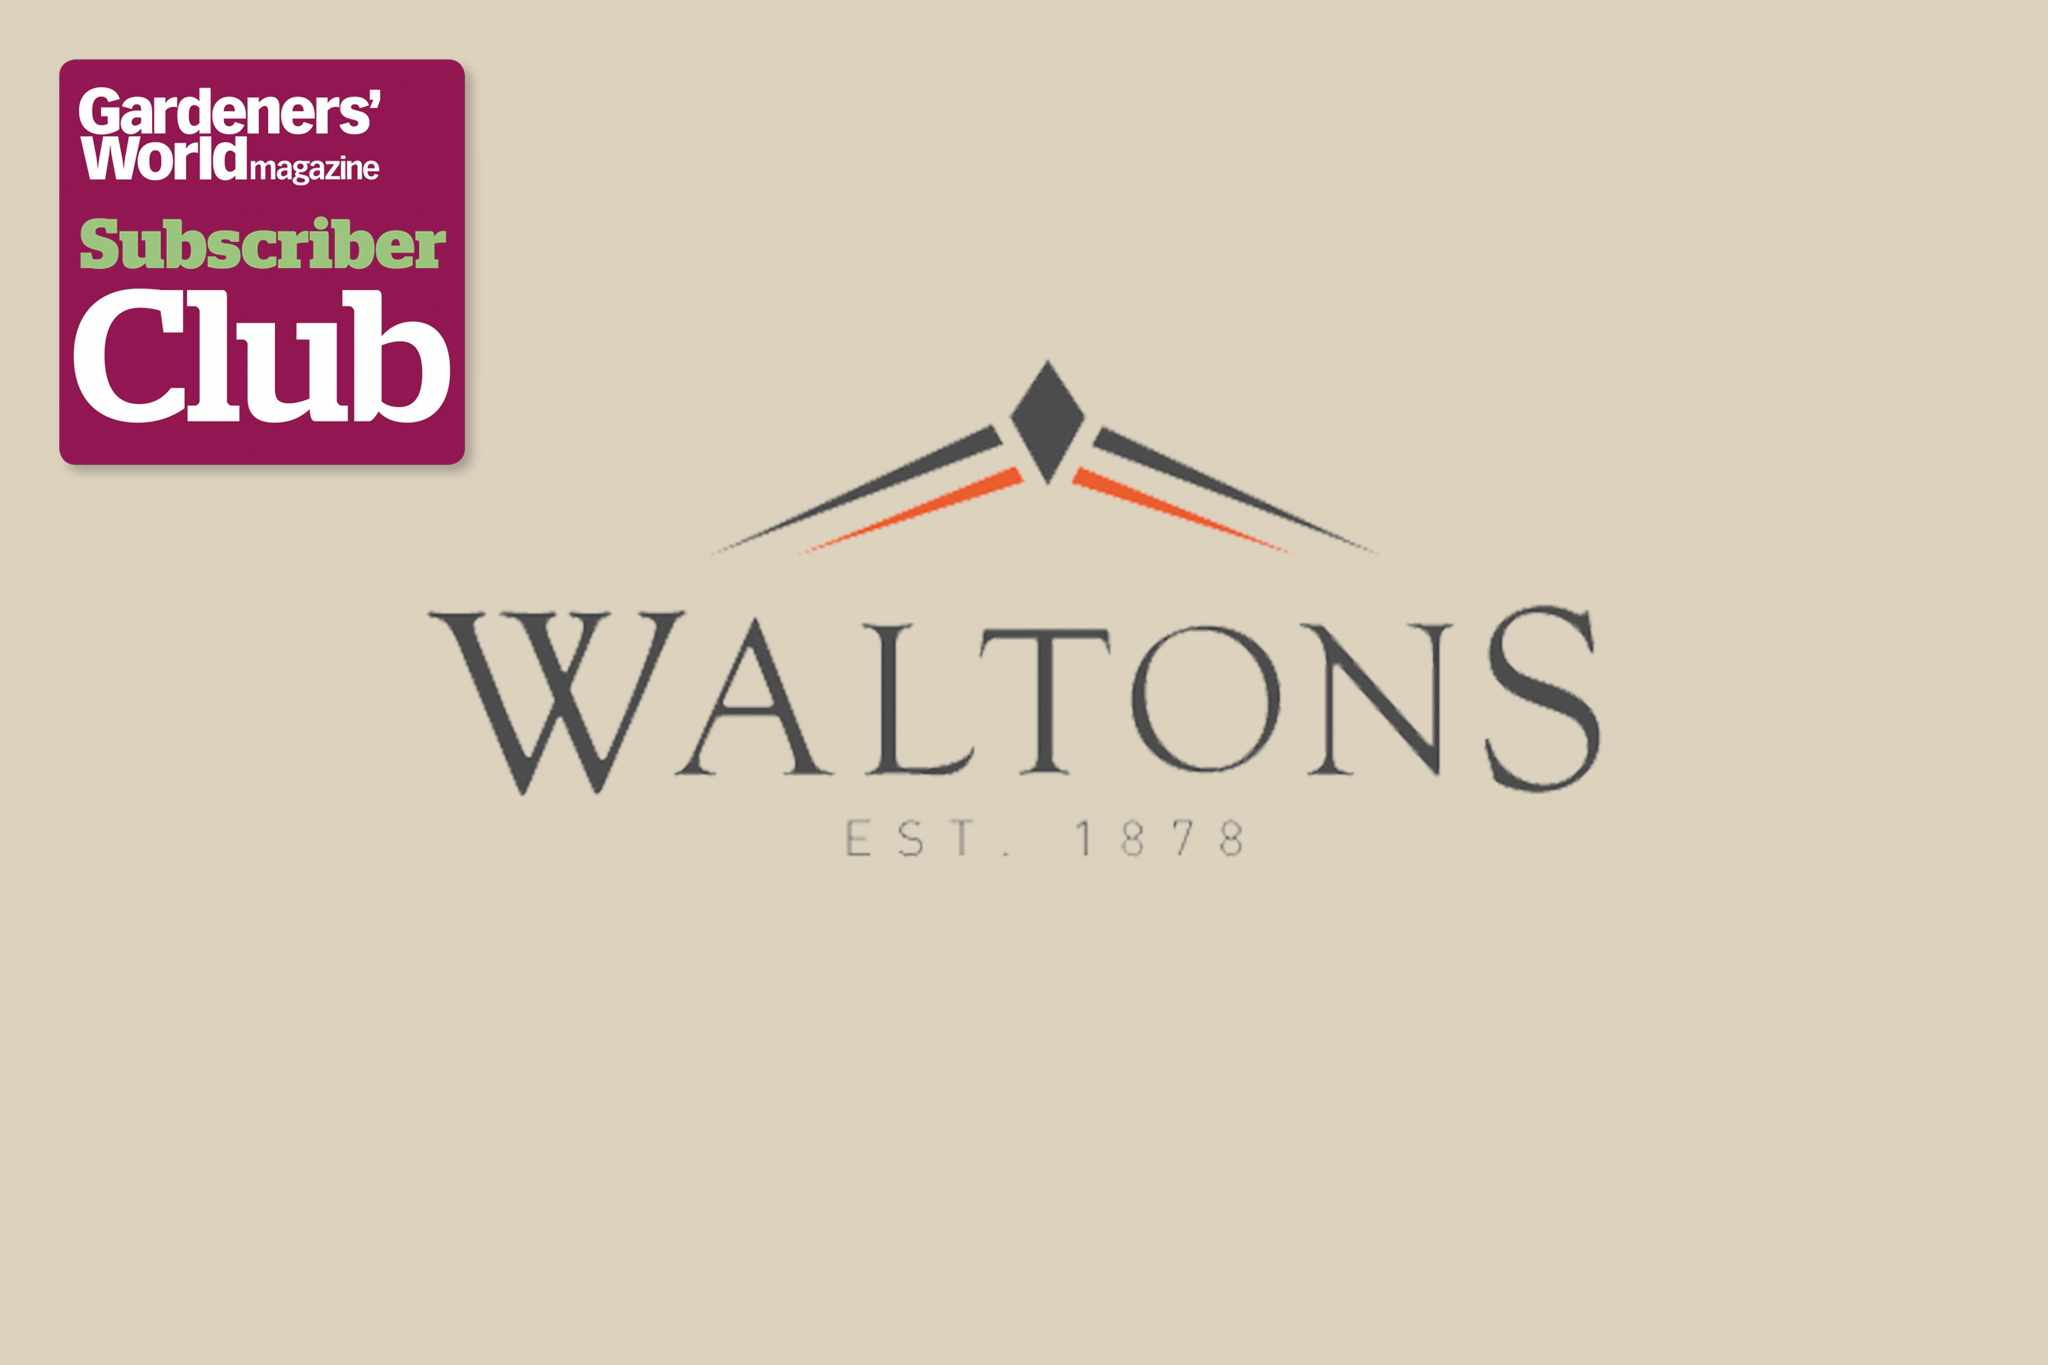 2048x1365-subscriber-club-10-per-cent-waltons